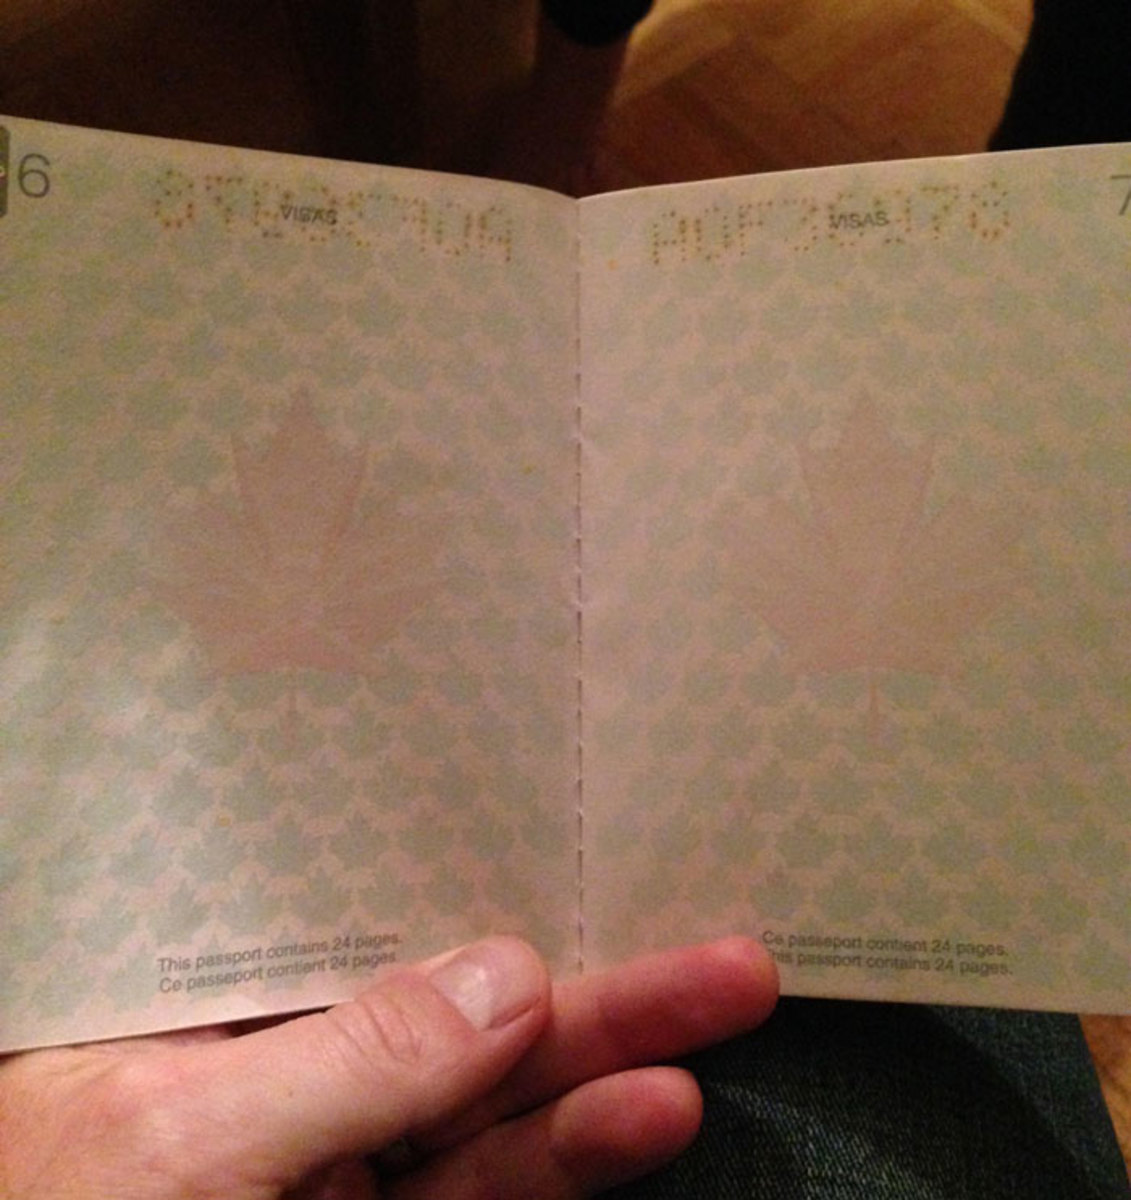 new-canadian-passport-uv-light-images-1